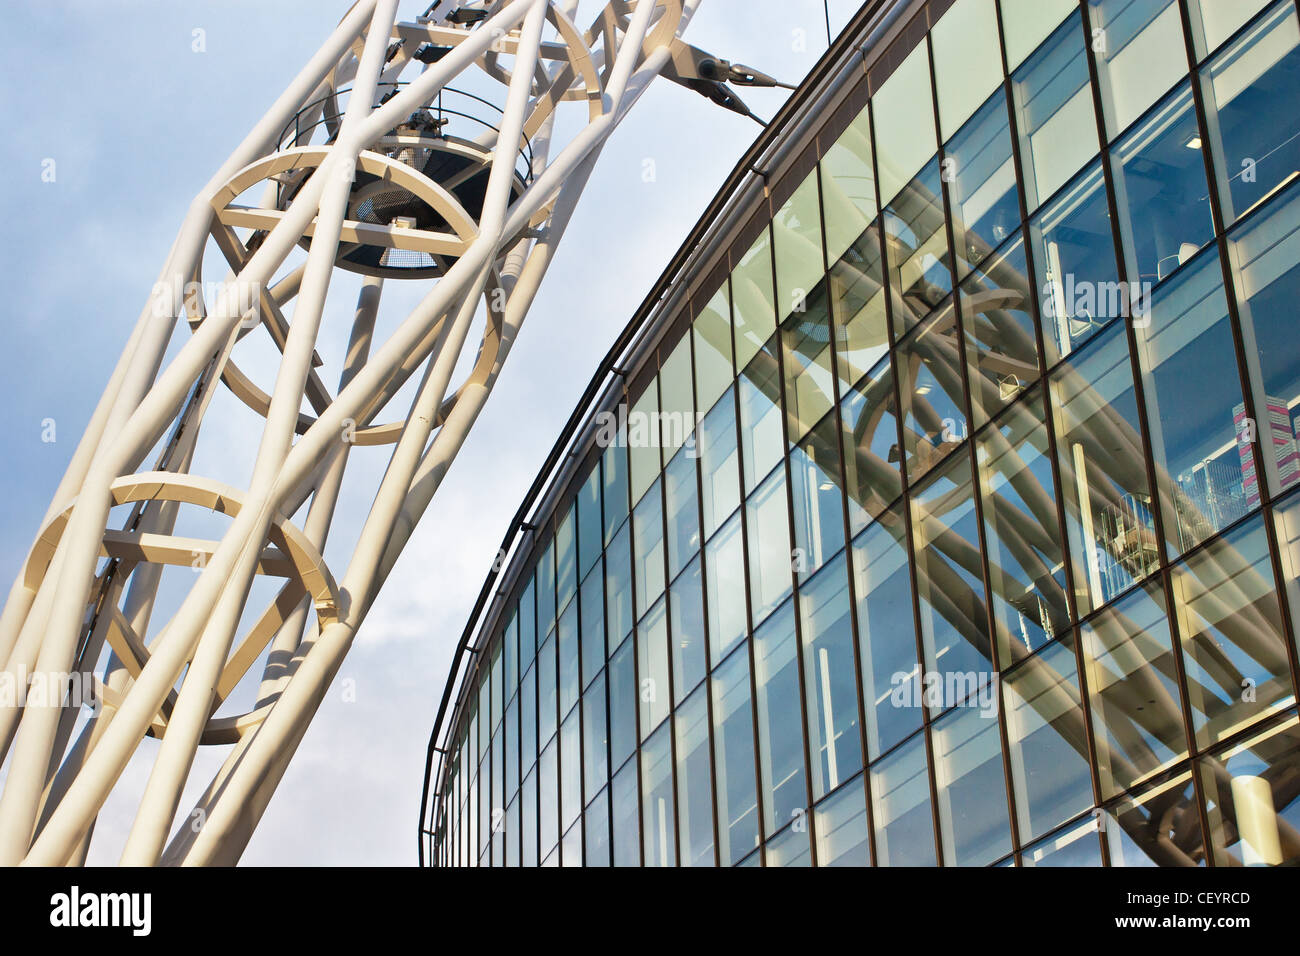 The Arch over Wembley Stadium. 2012 London Olympic Venue and home of the England national football team. - Stock Image